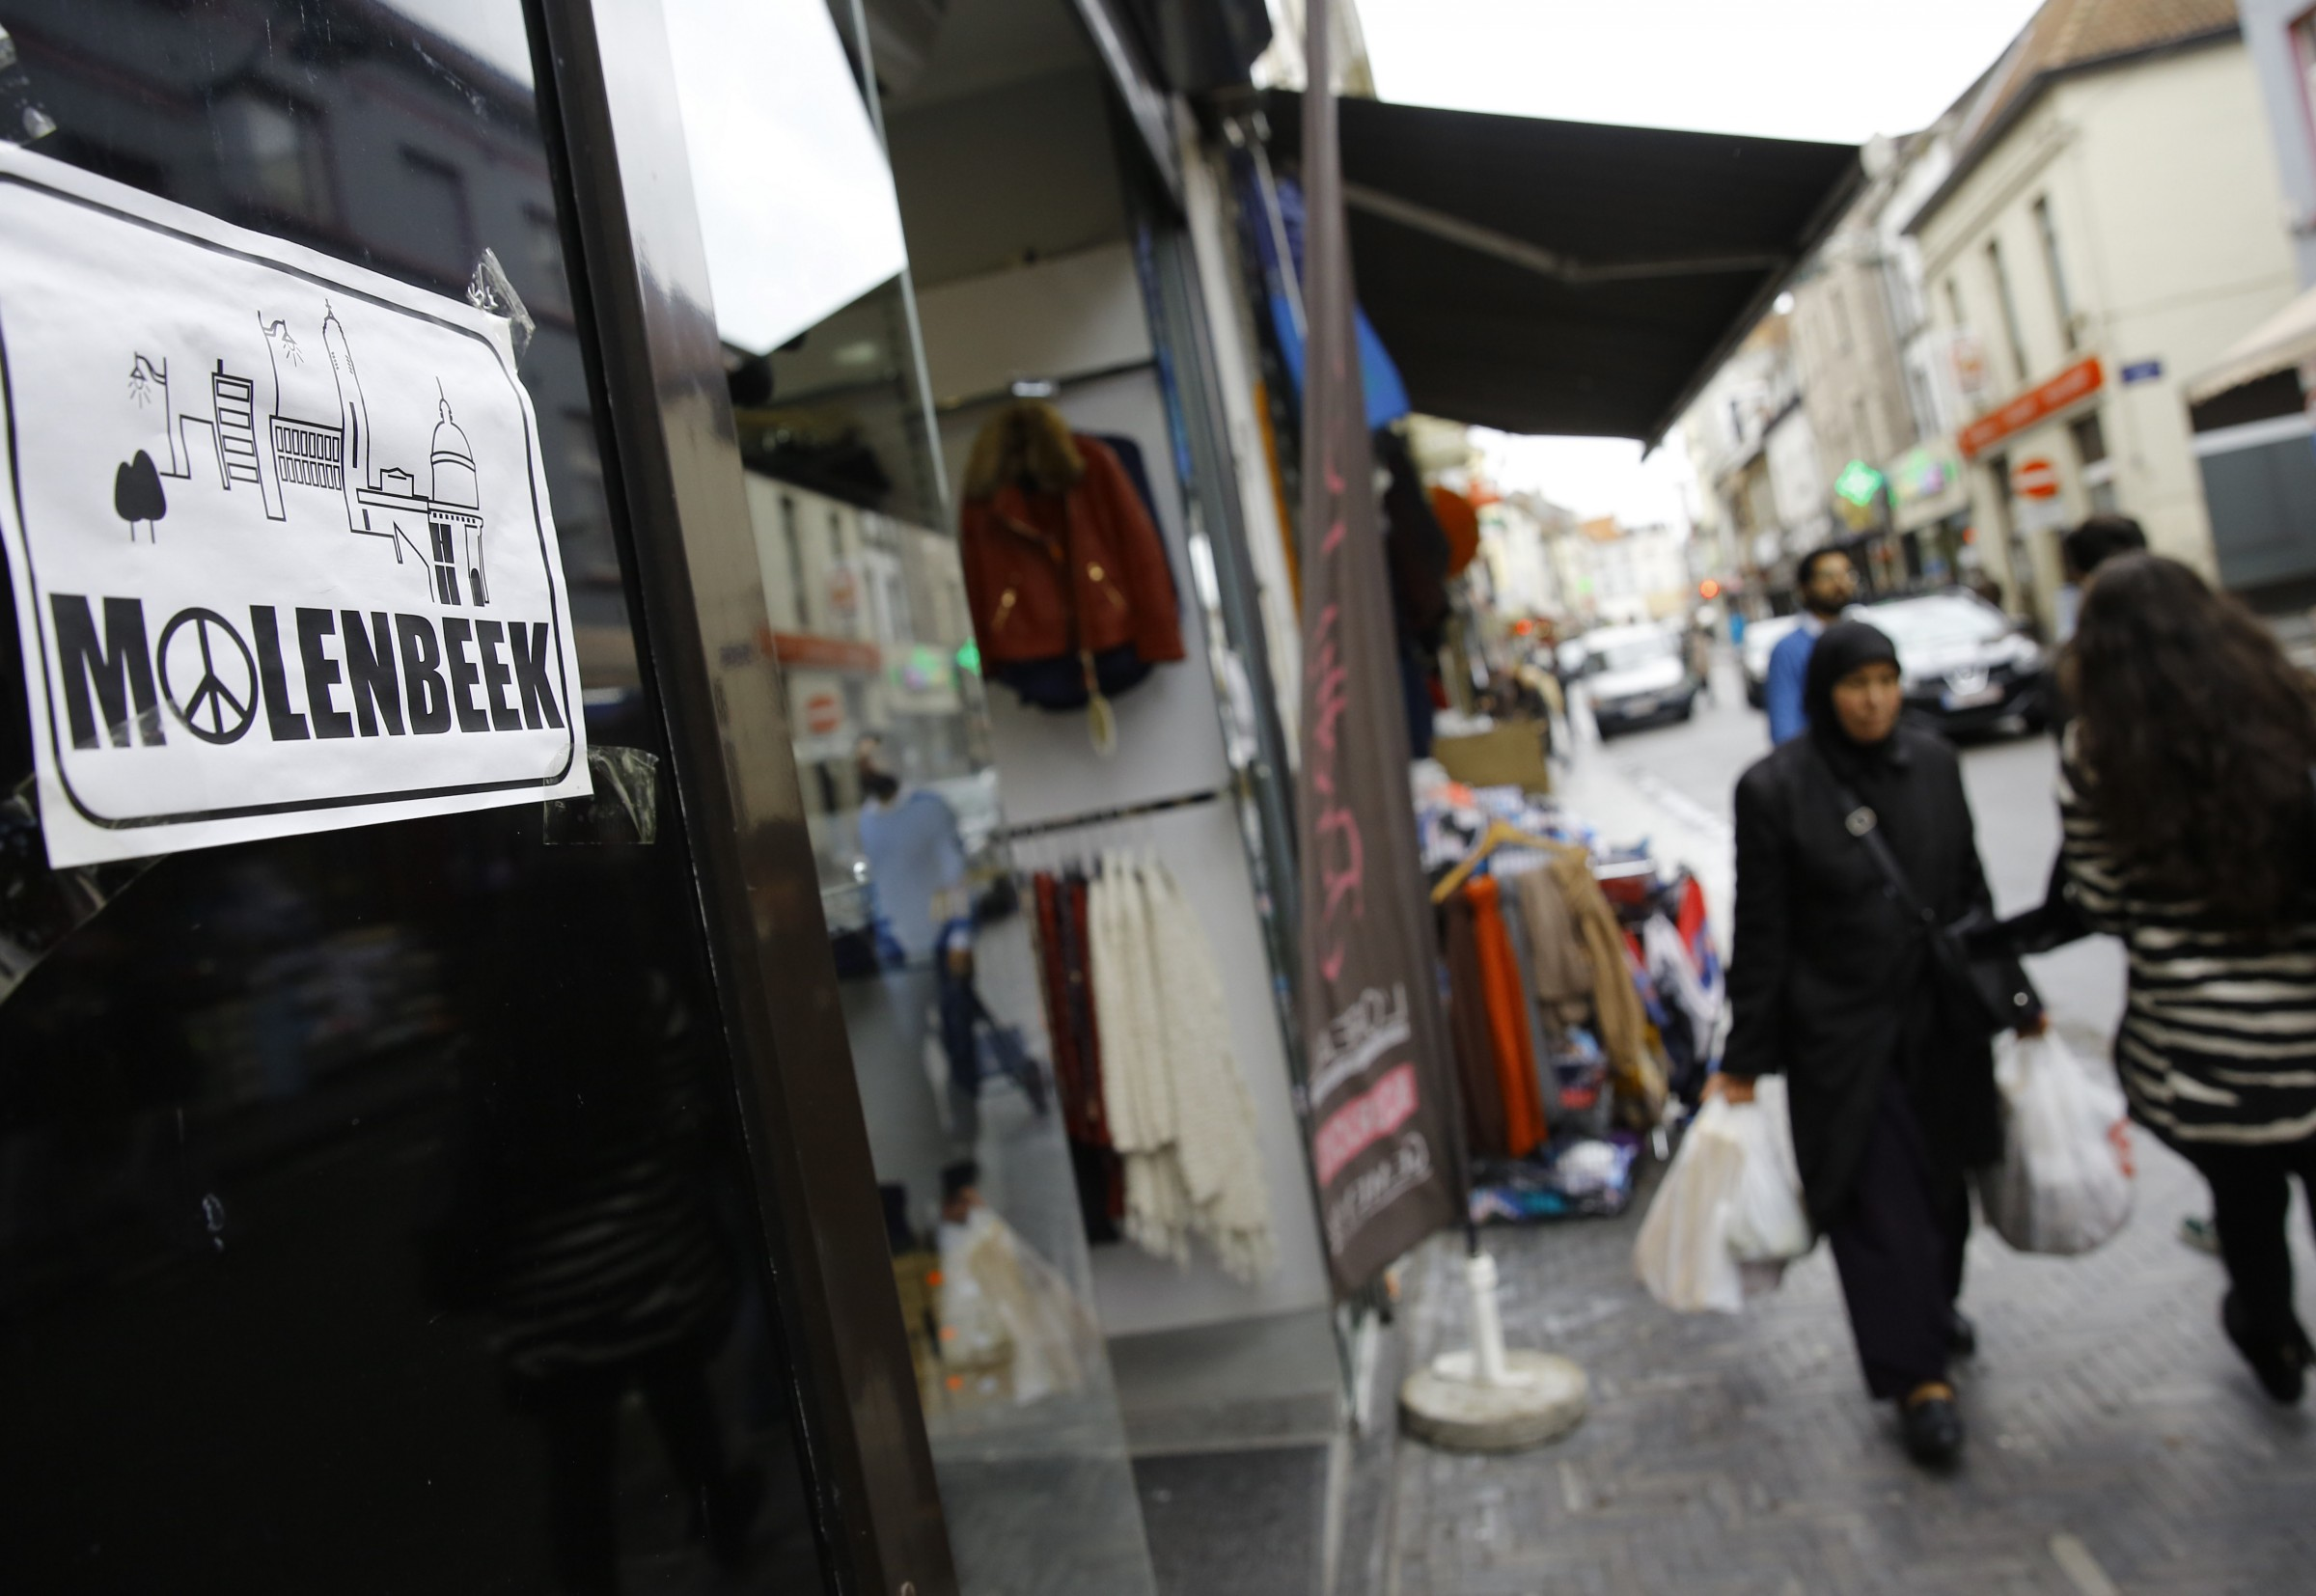 18 Nov 2015, Brussels, Belgium --- (151117) -- BRUSSELS, Nov. 17, 2015 (Xinhua) -- Pedestrians walk in a shopping street in Molenbeek district of Brussels, capital of Belgium, Nov. 17, 2015. Some Paris terror attackers are believed to live in Molenbeek neighborhood and Belgian police have launched series of raids and operations here since the last weekend. (Xinhua/Ye Pingfan) --- Image by © Ye Pingfan/Xinhua Press/Corbis